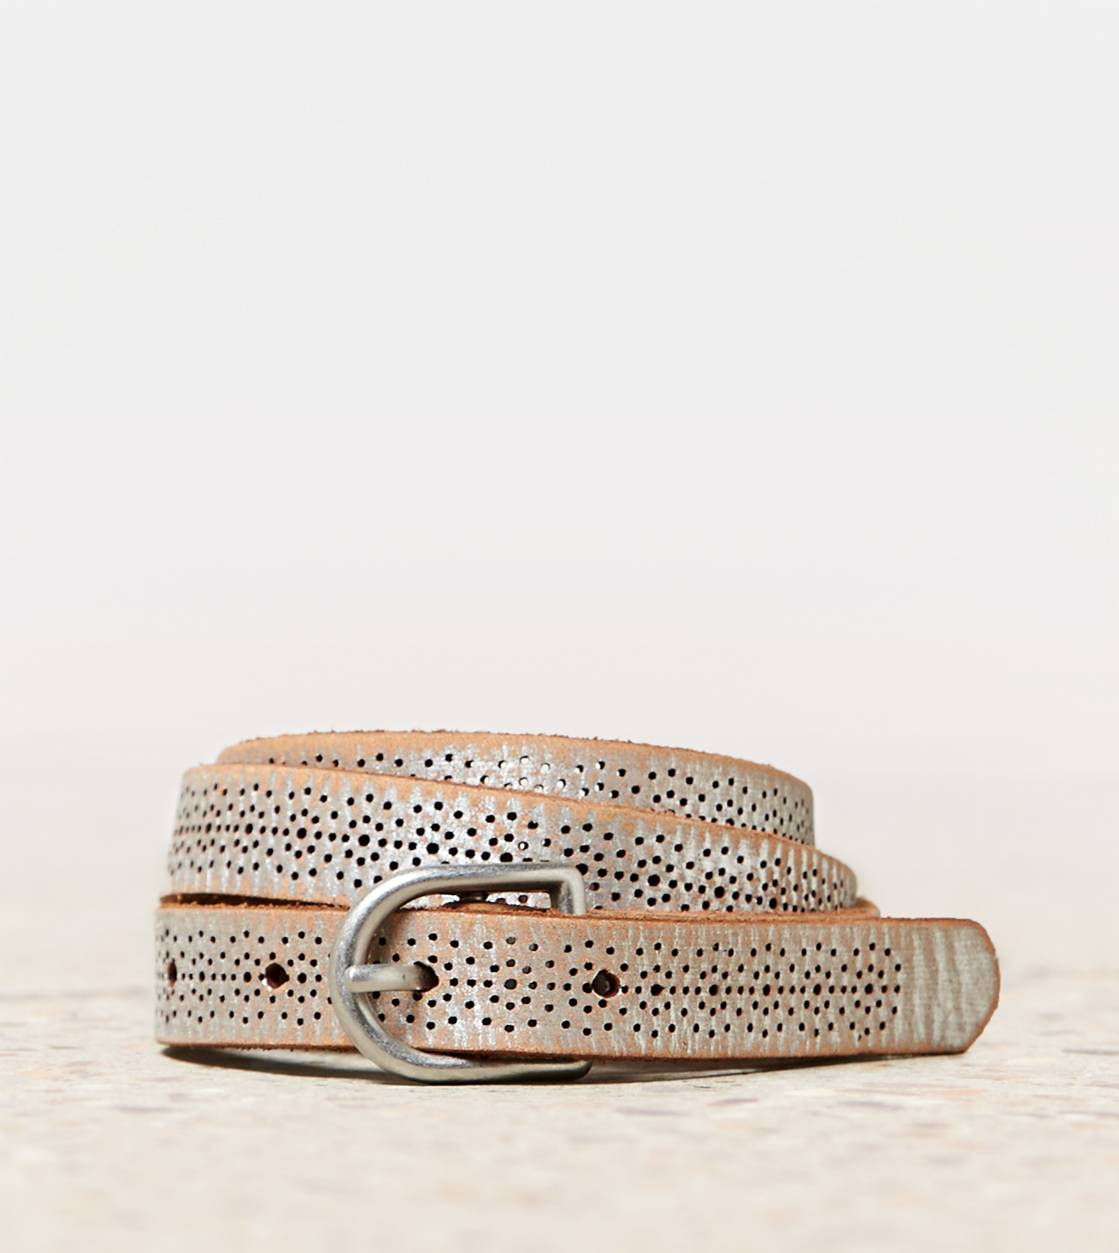 Silver AEO Metallic Leather Belt